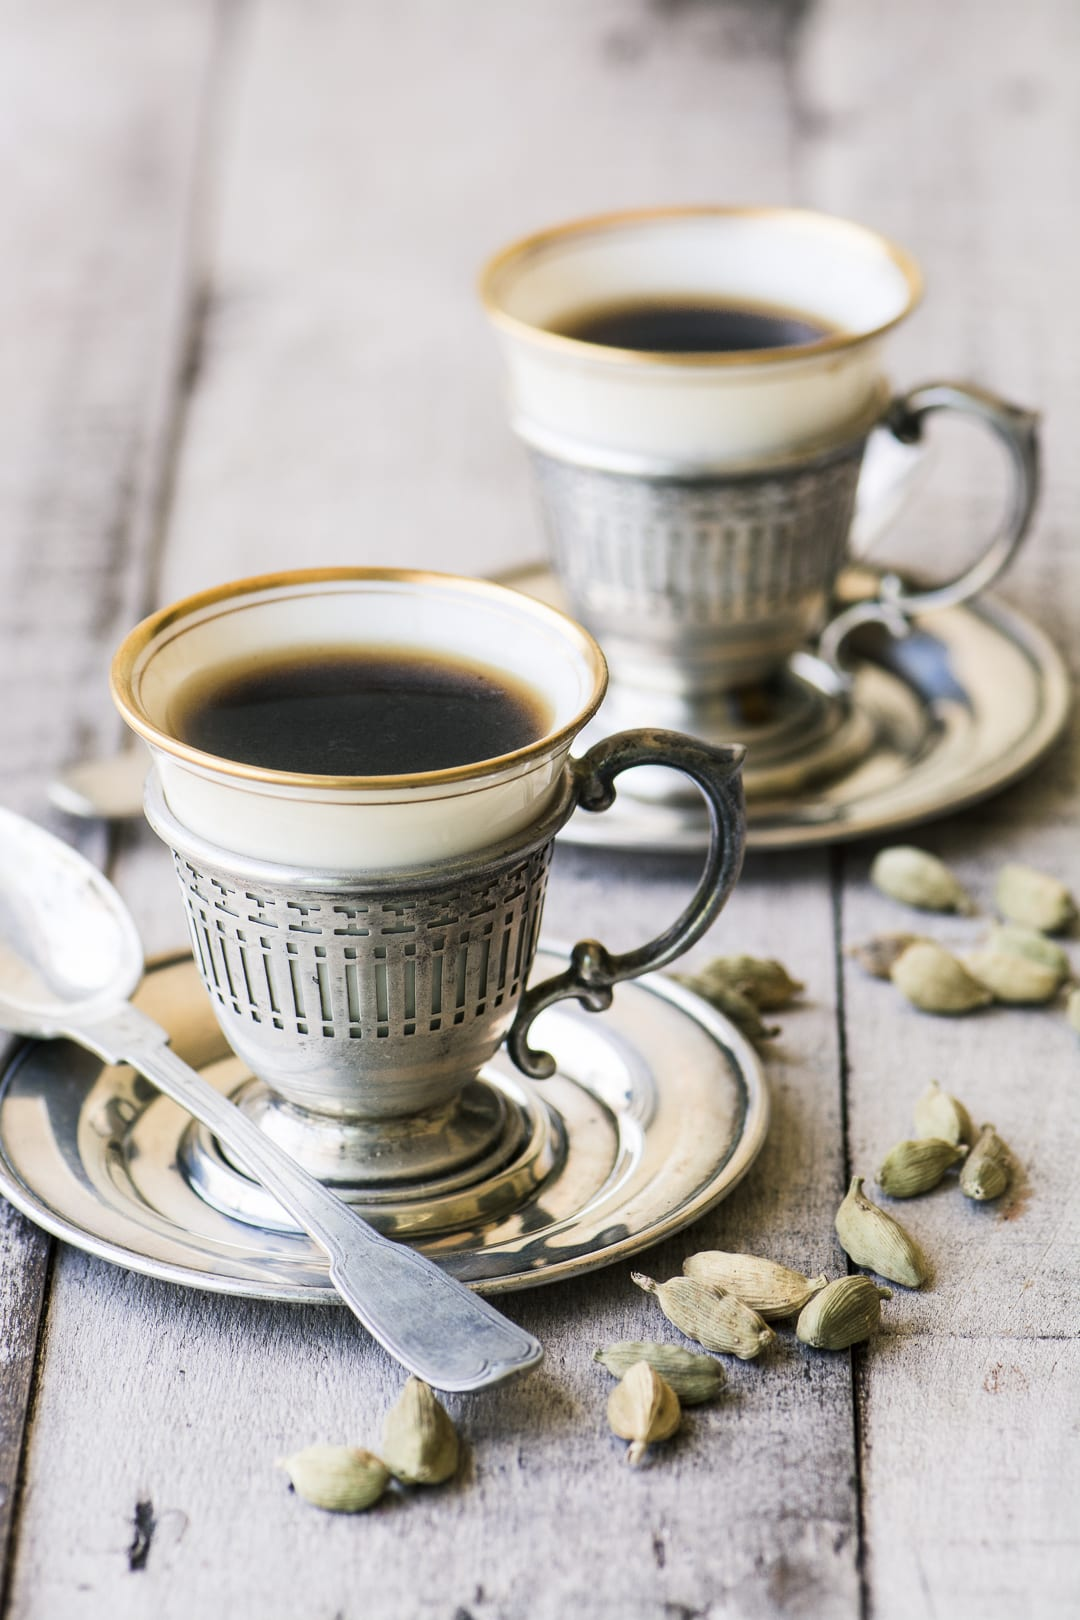 Turkish Coffee in vintage coffee cups